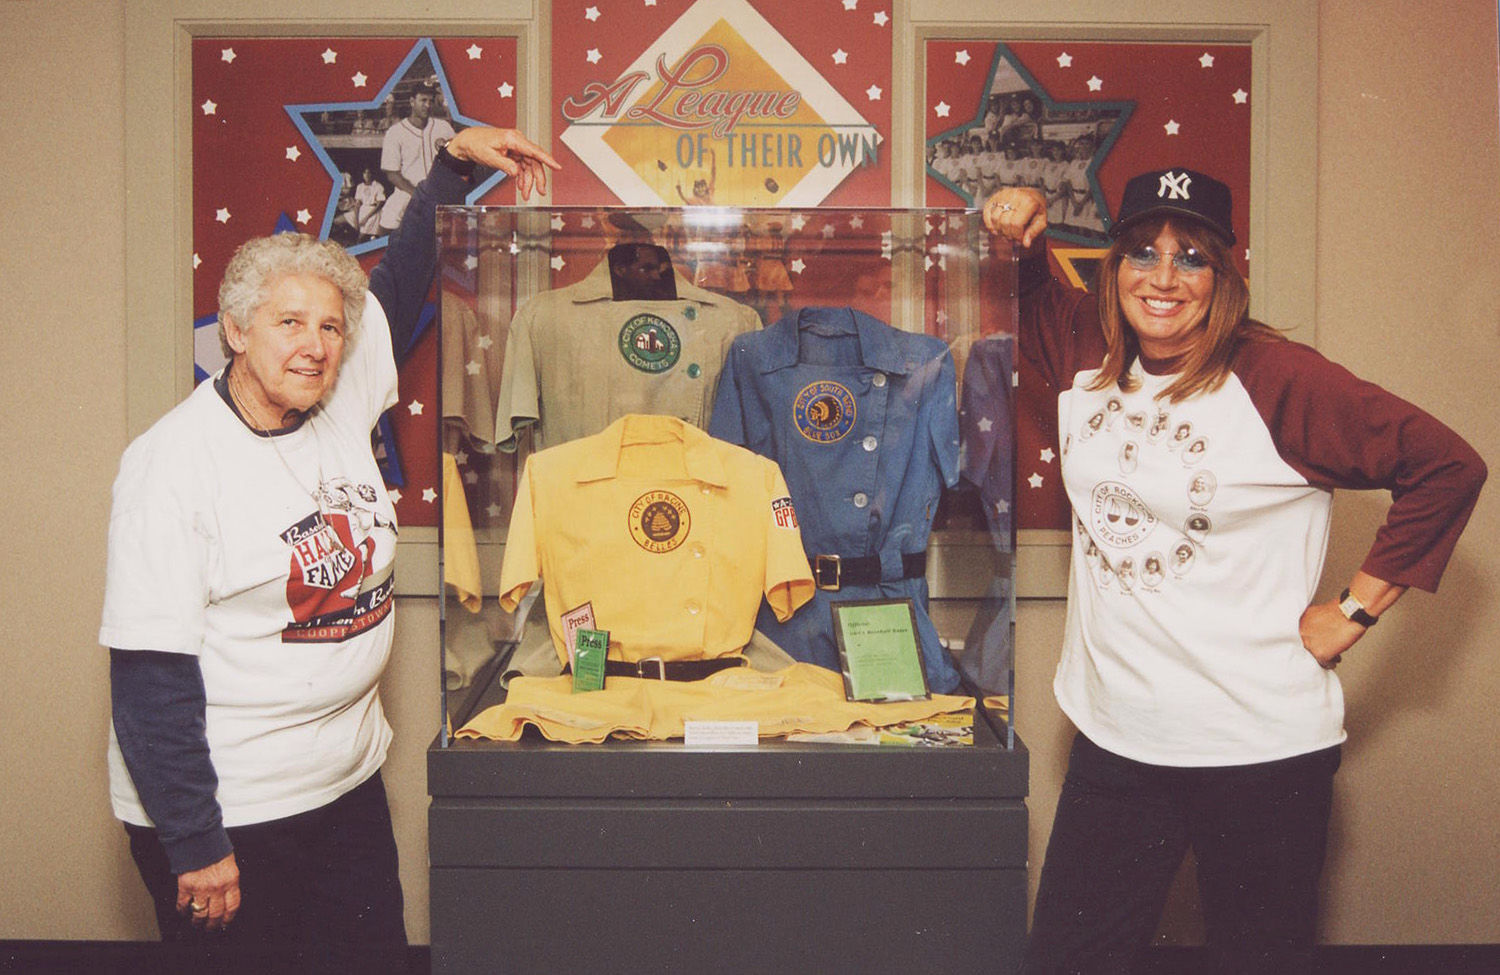 All American Girl Movie a quarter century of 'a league of their own' | baseball hall